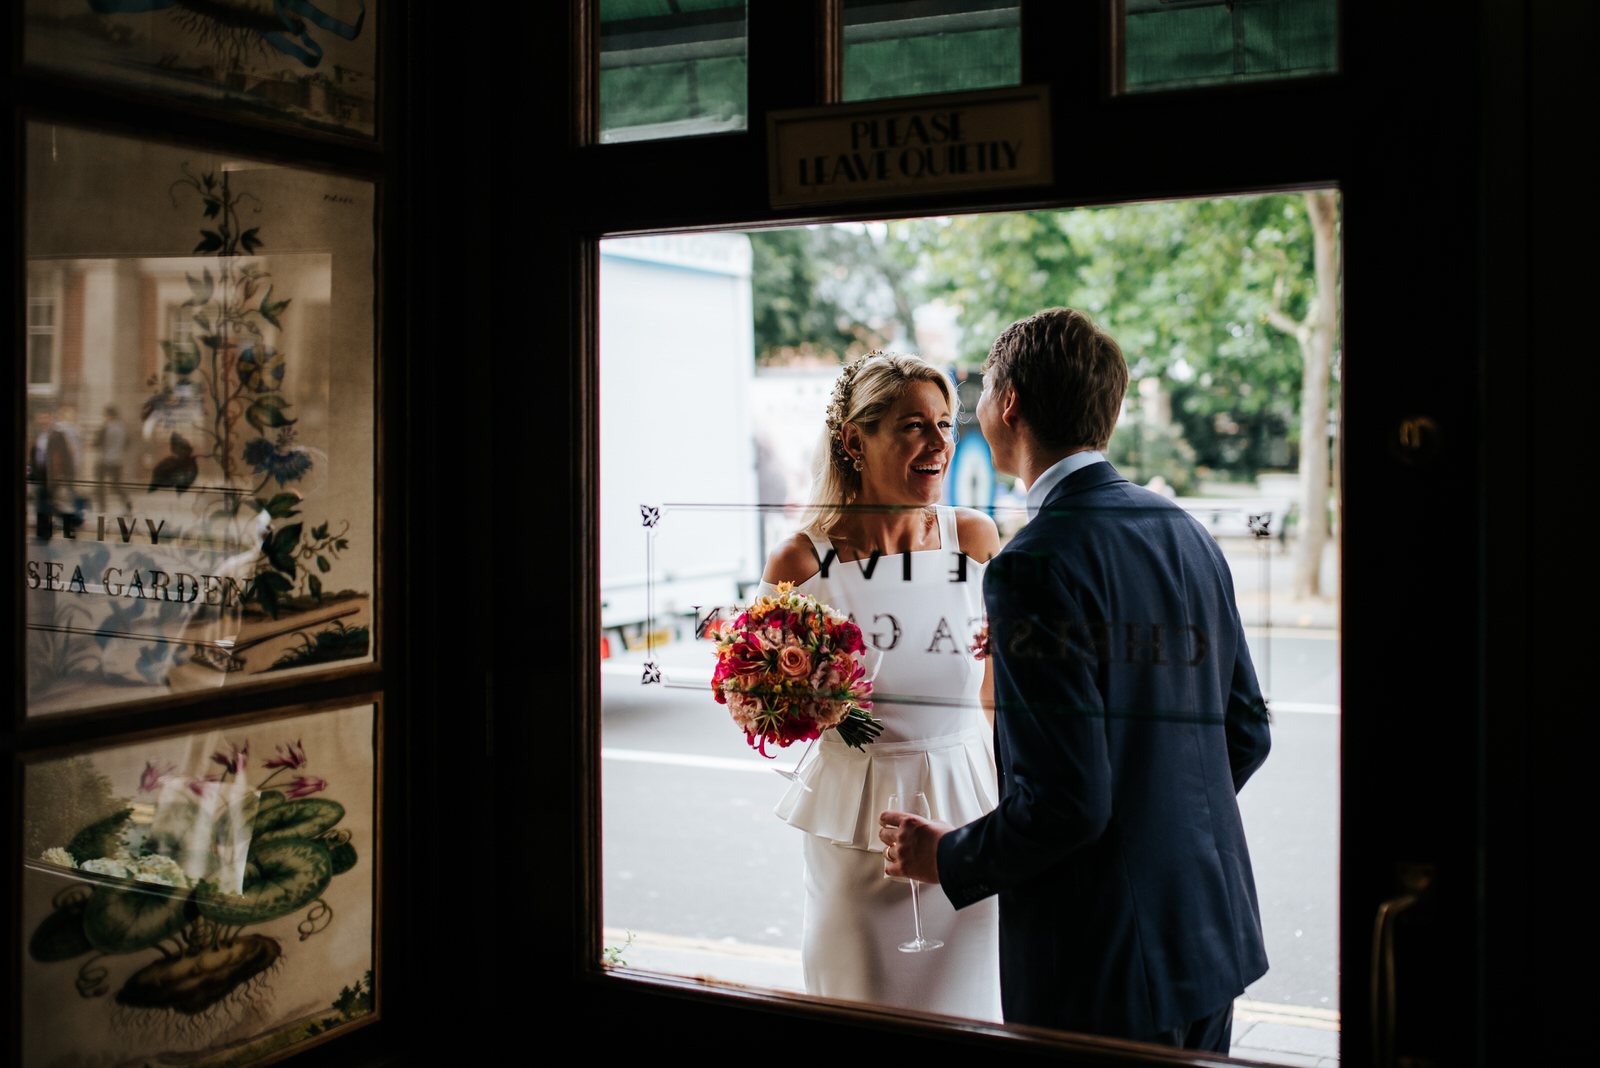 Bride and groom smile at each other in front of The Ivy Chelsea